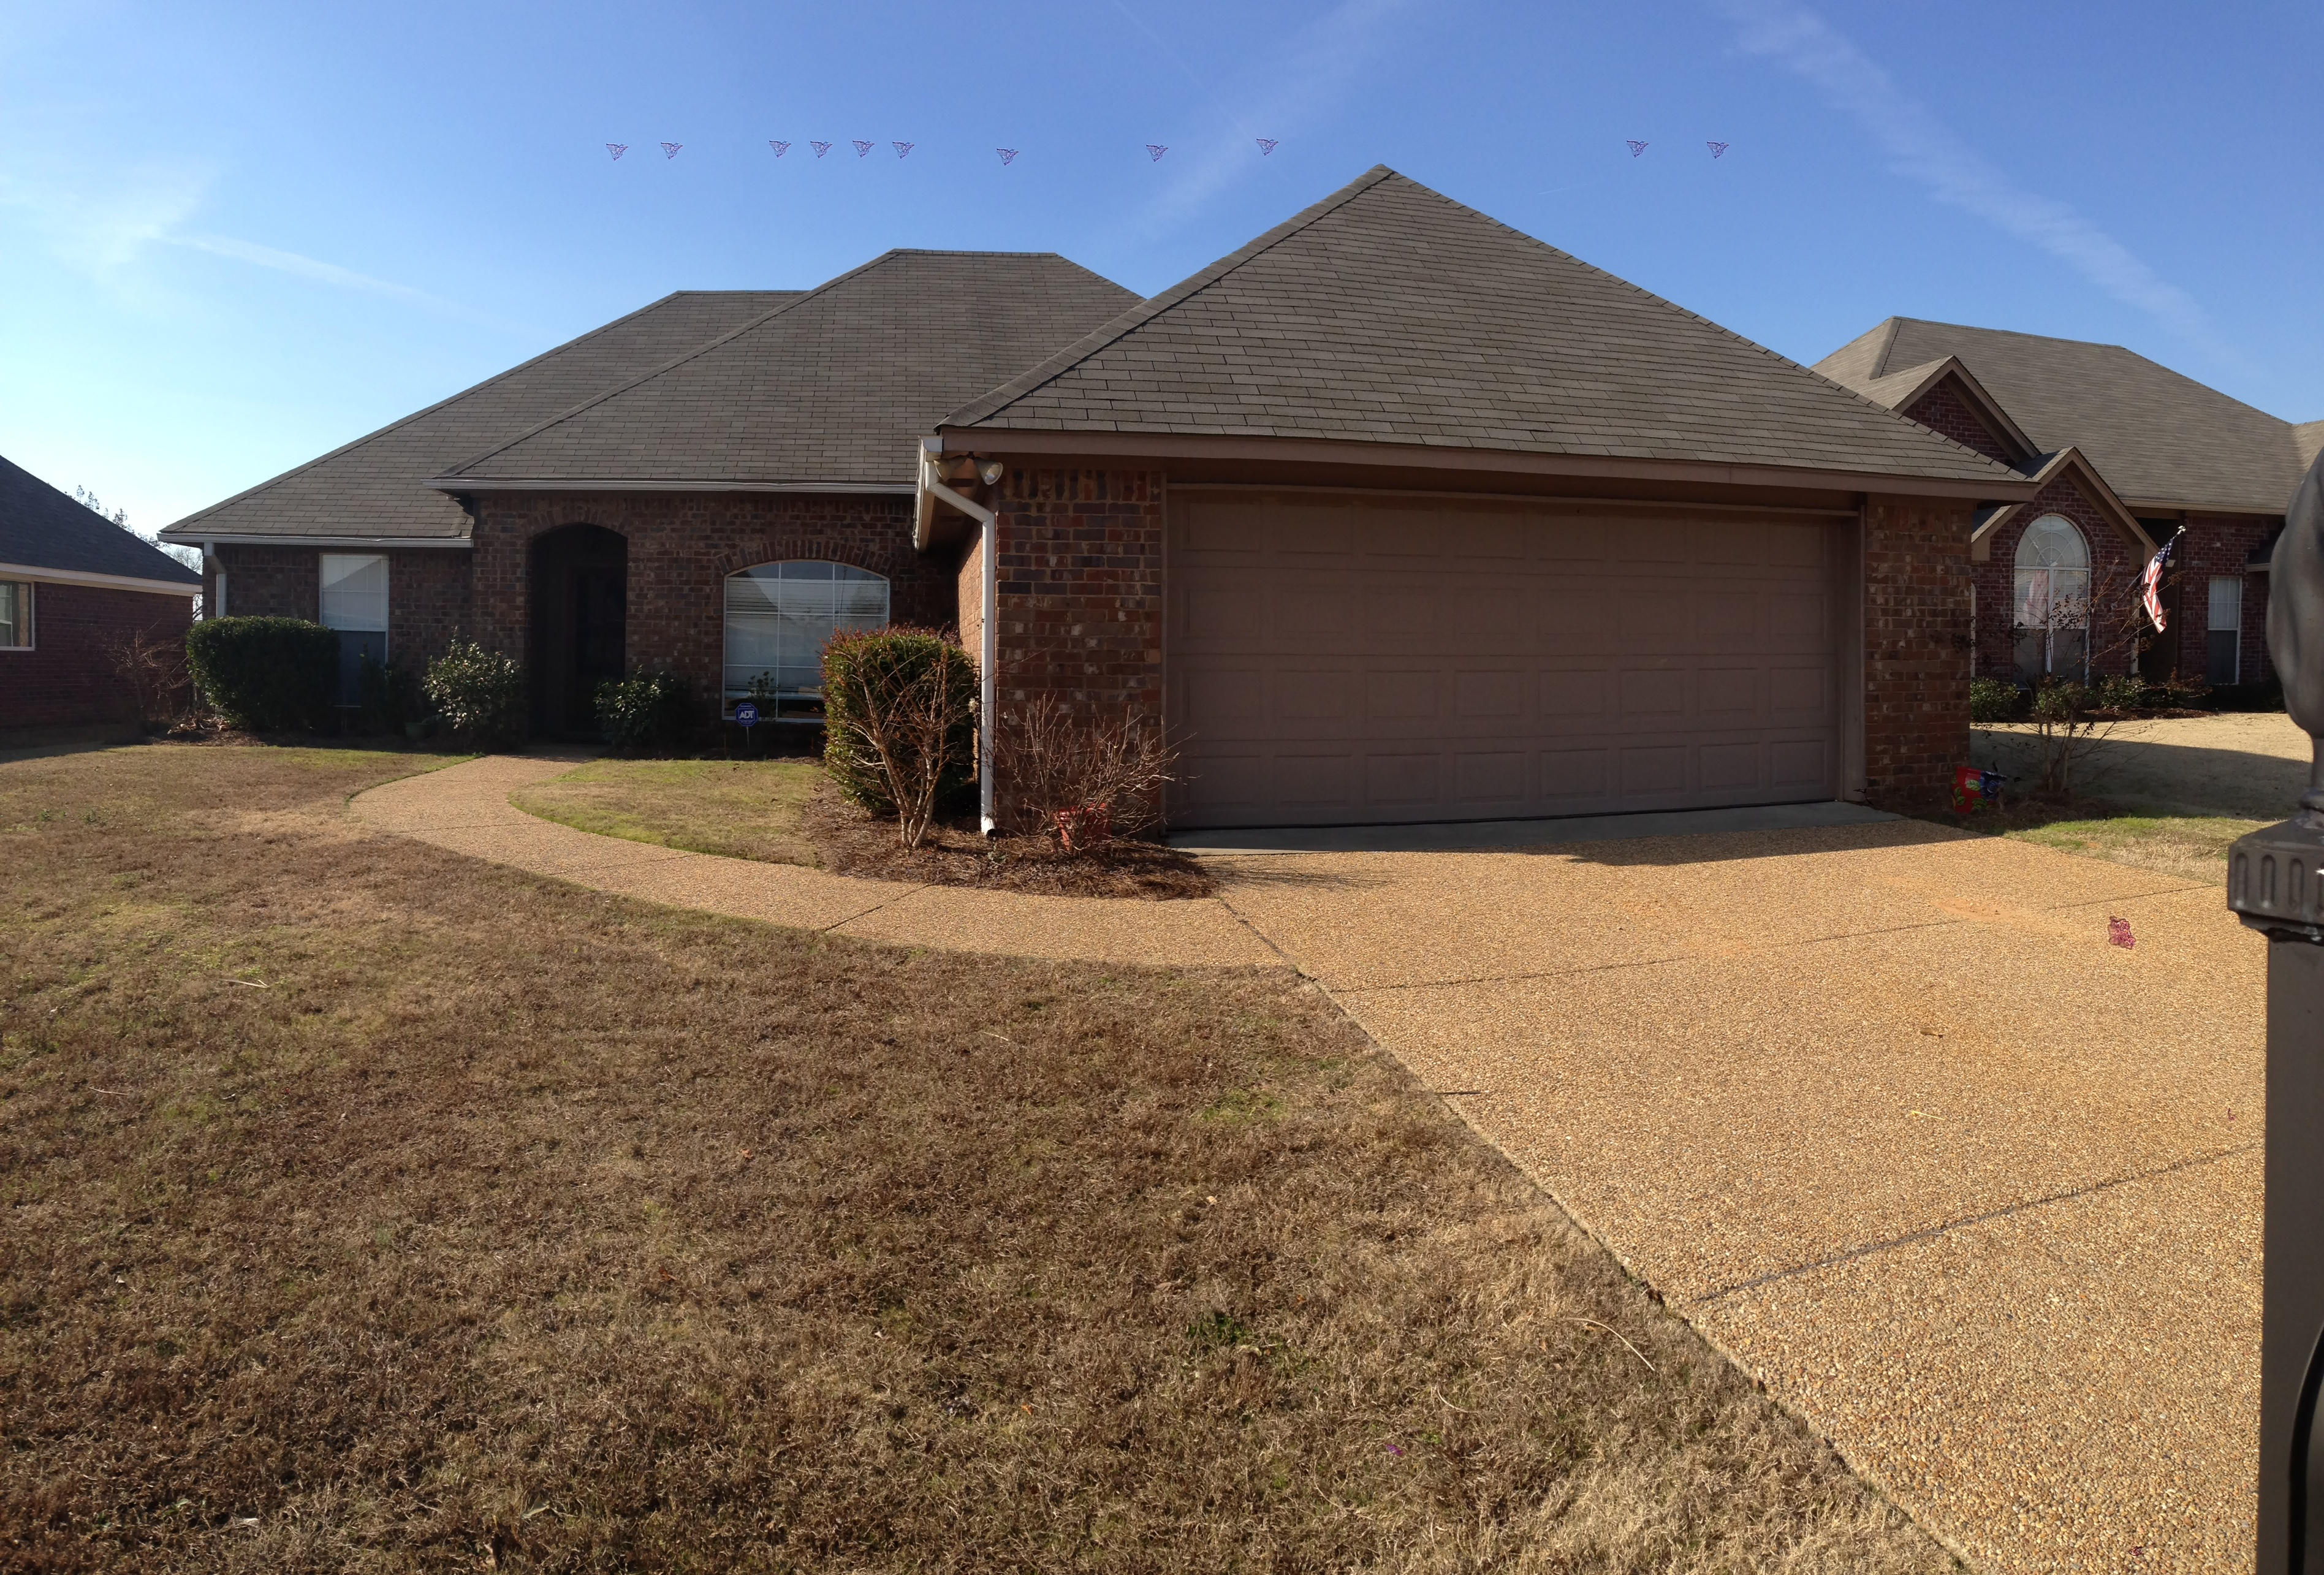 617 Wildberry Drive - Pearl